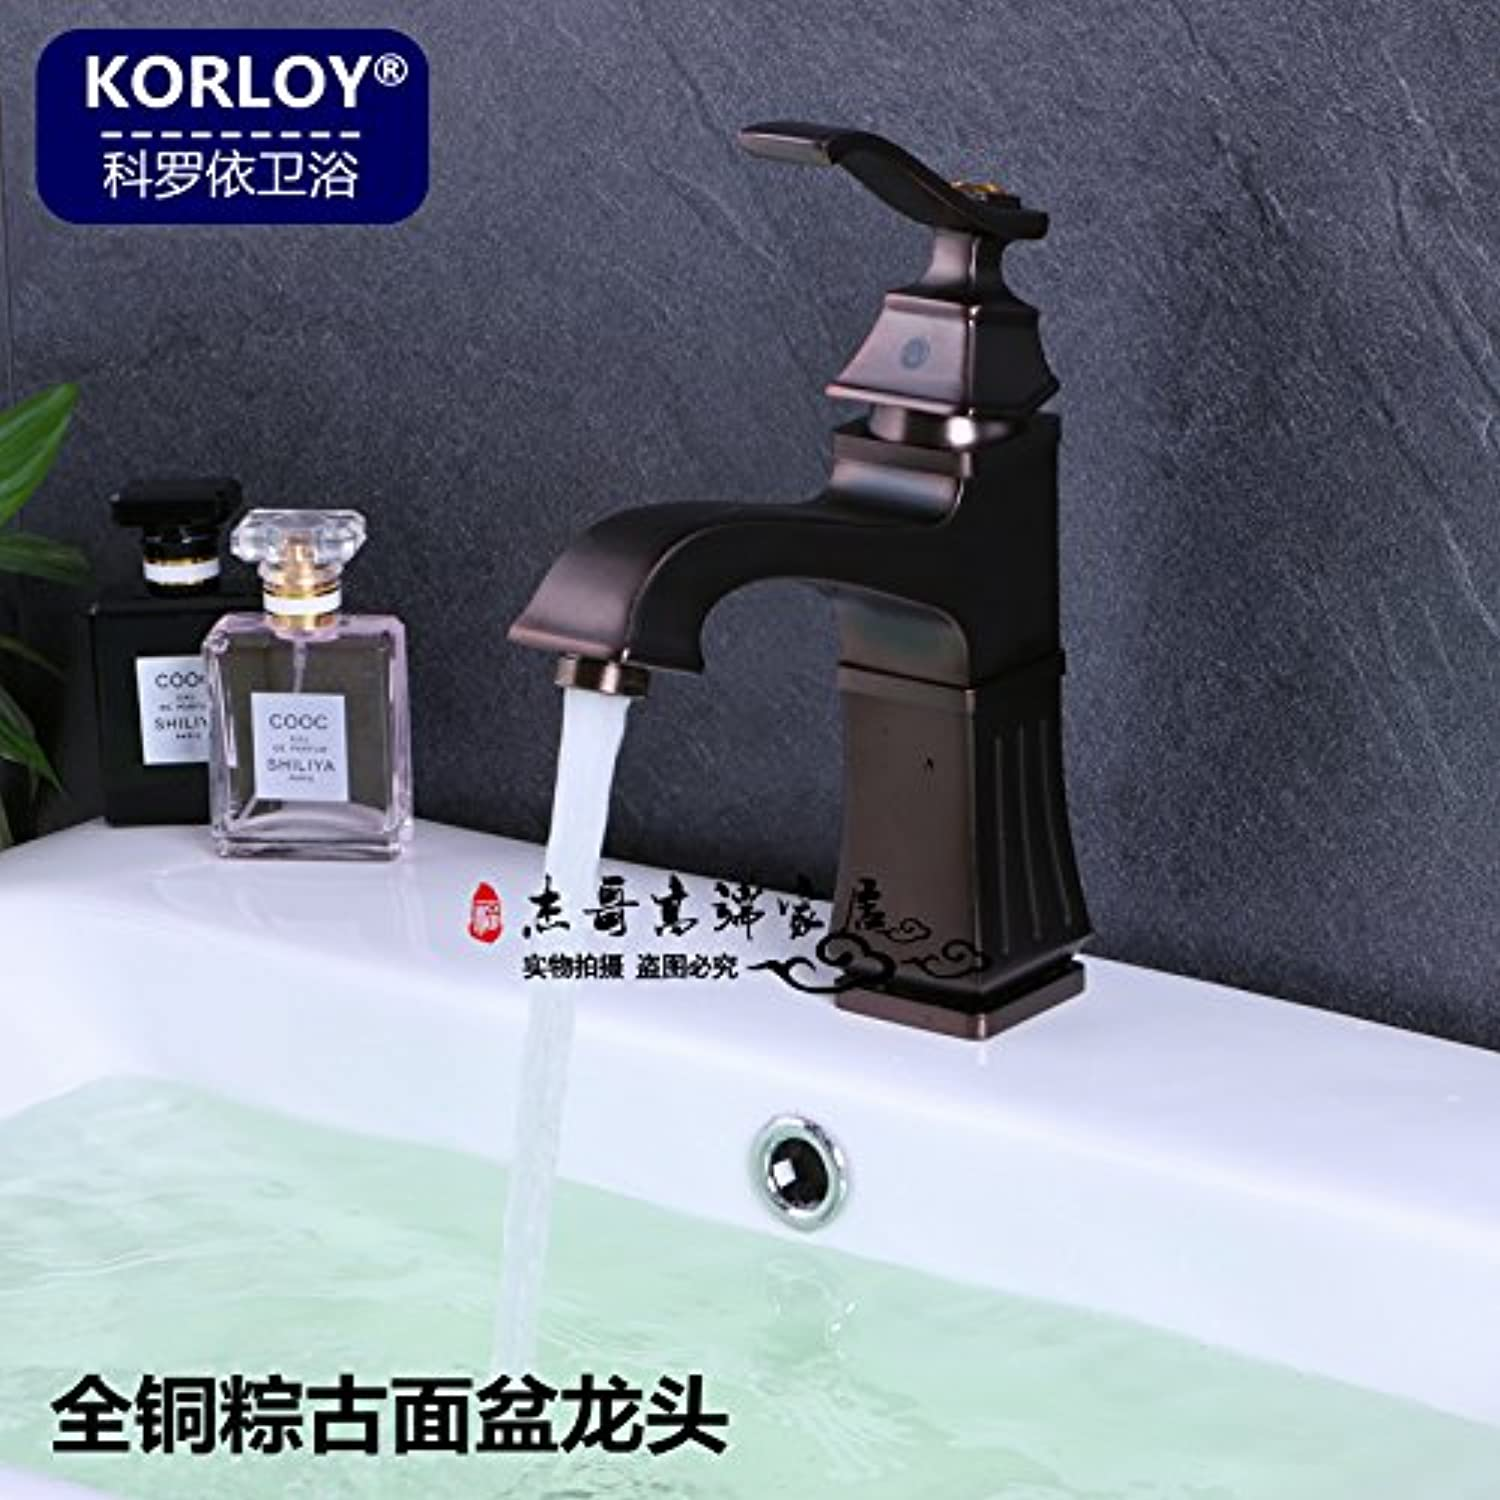 Lalaky Taps Faucet Kitchen Mixer Sink Waterfall Bathroom Mixer Basin Mixer Tap for Kitchen Bathroom and Washroom Copper Hot and Cold Single Hole 粽古拉丝